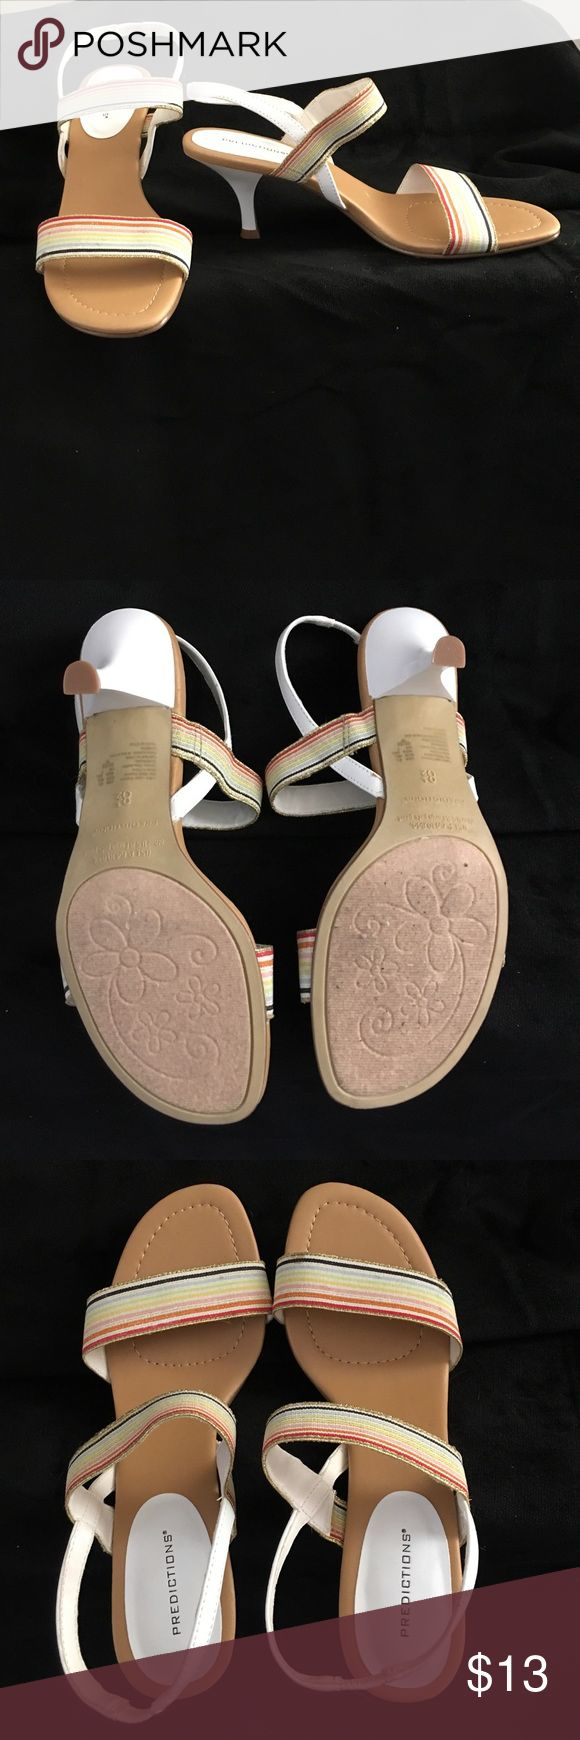 """Summer Sandals Sz 8.5 These are in new condition. The white and multi coloured and gold straps make it easy to match with casual and dress. The heal is 2.5"""". Predictions Shoes Sandals"""